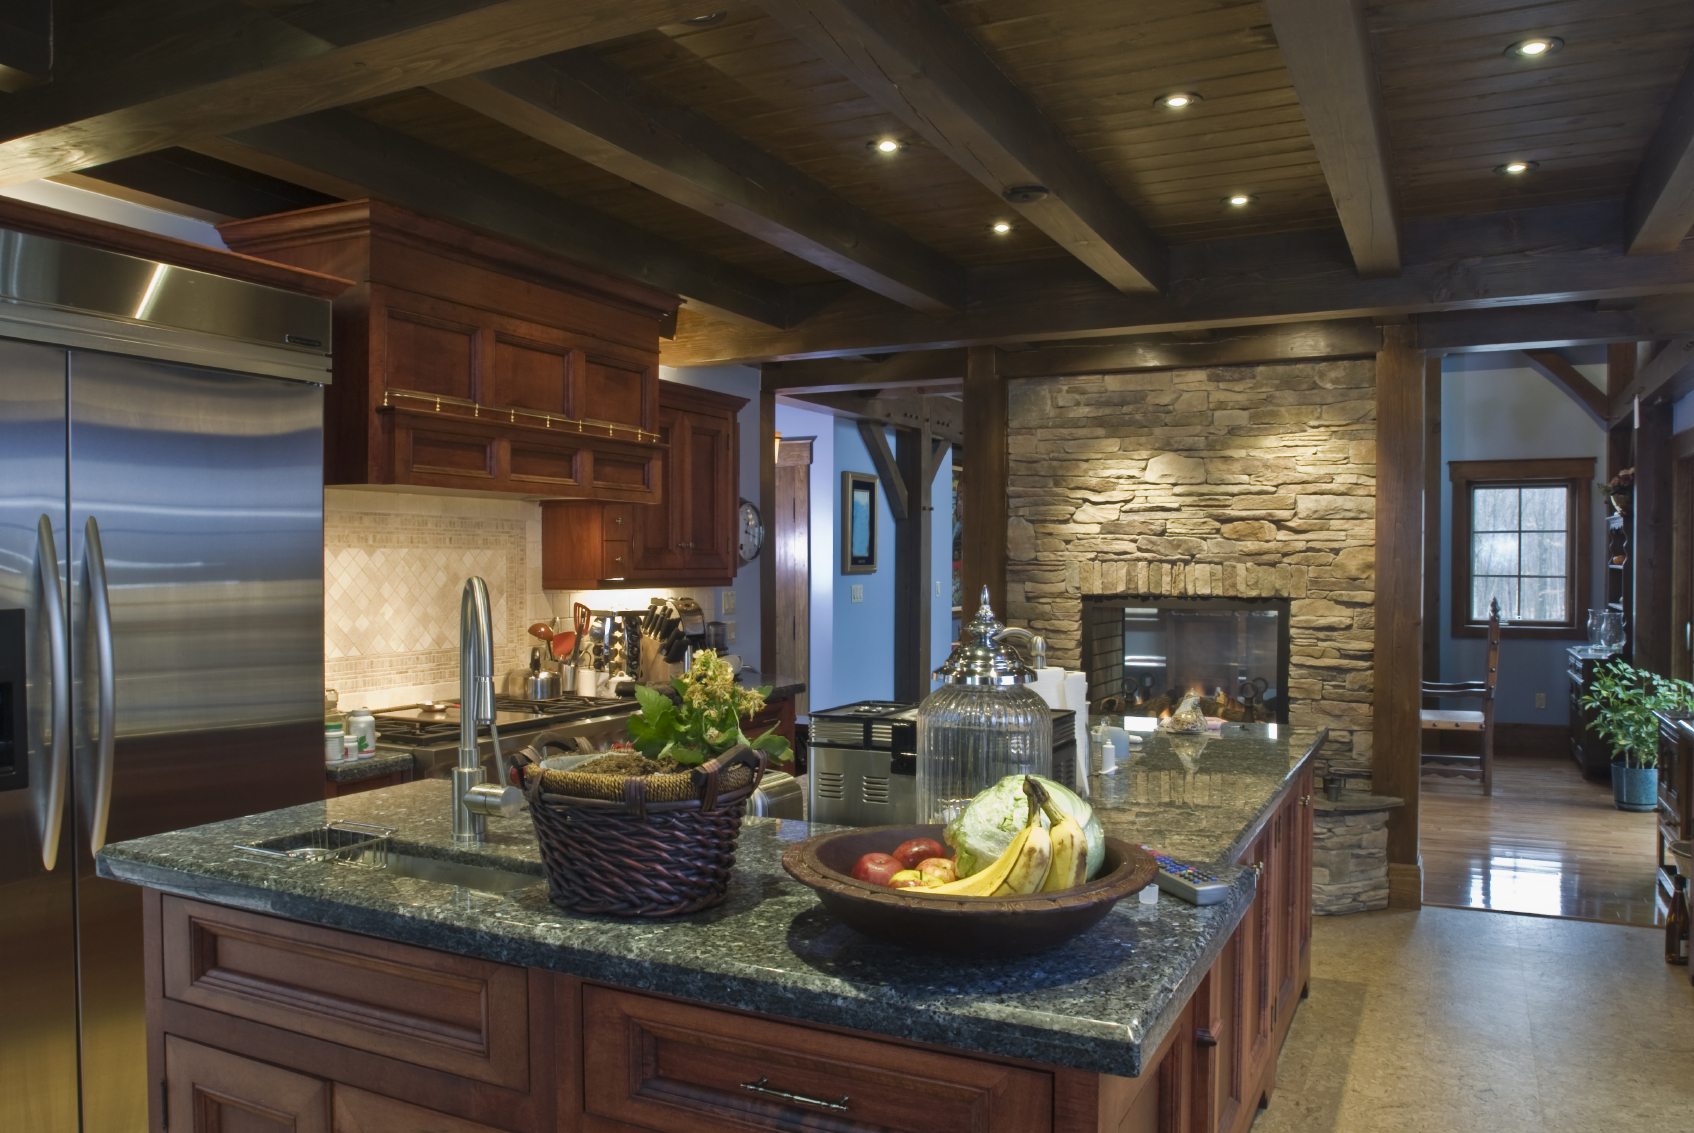 52 Dark Kitchens With Wood Or Black Kitchen Cabinets 2021 Home Stratosphere